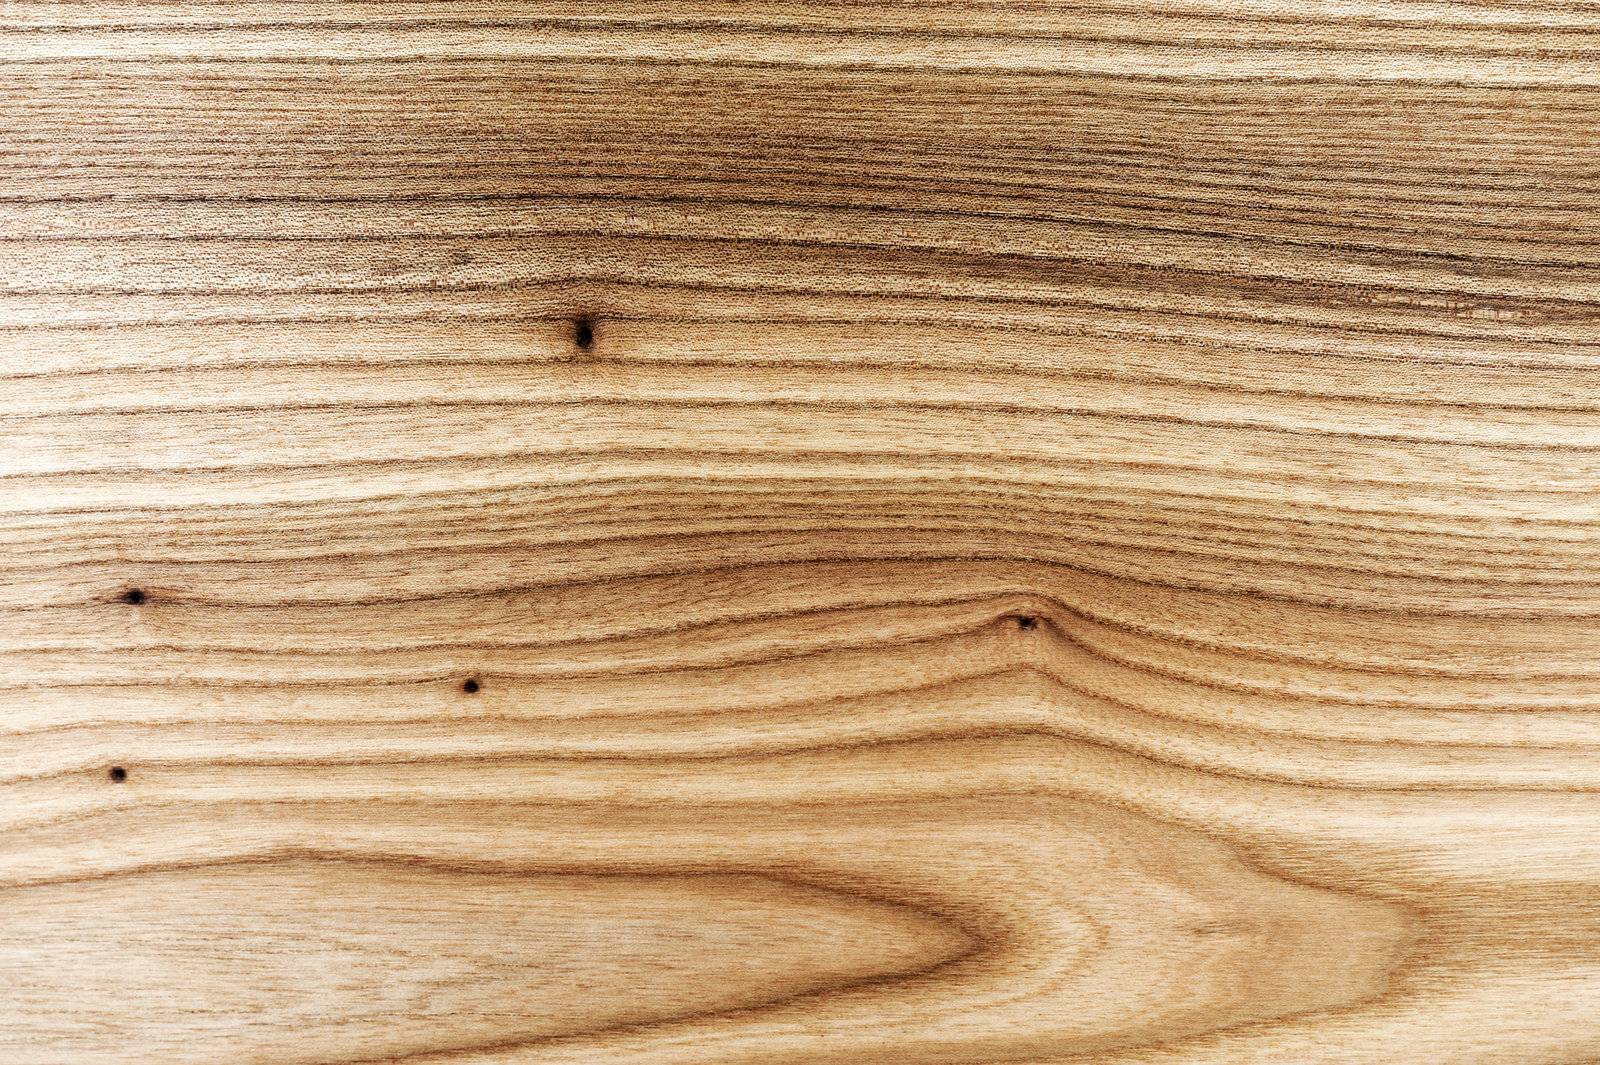 textured, pattern, wood, wooden, material, surface - D6223220